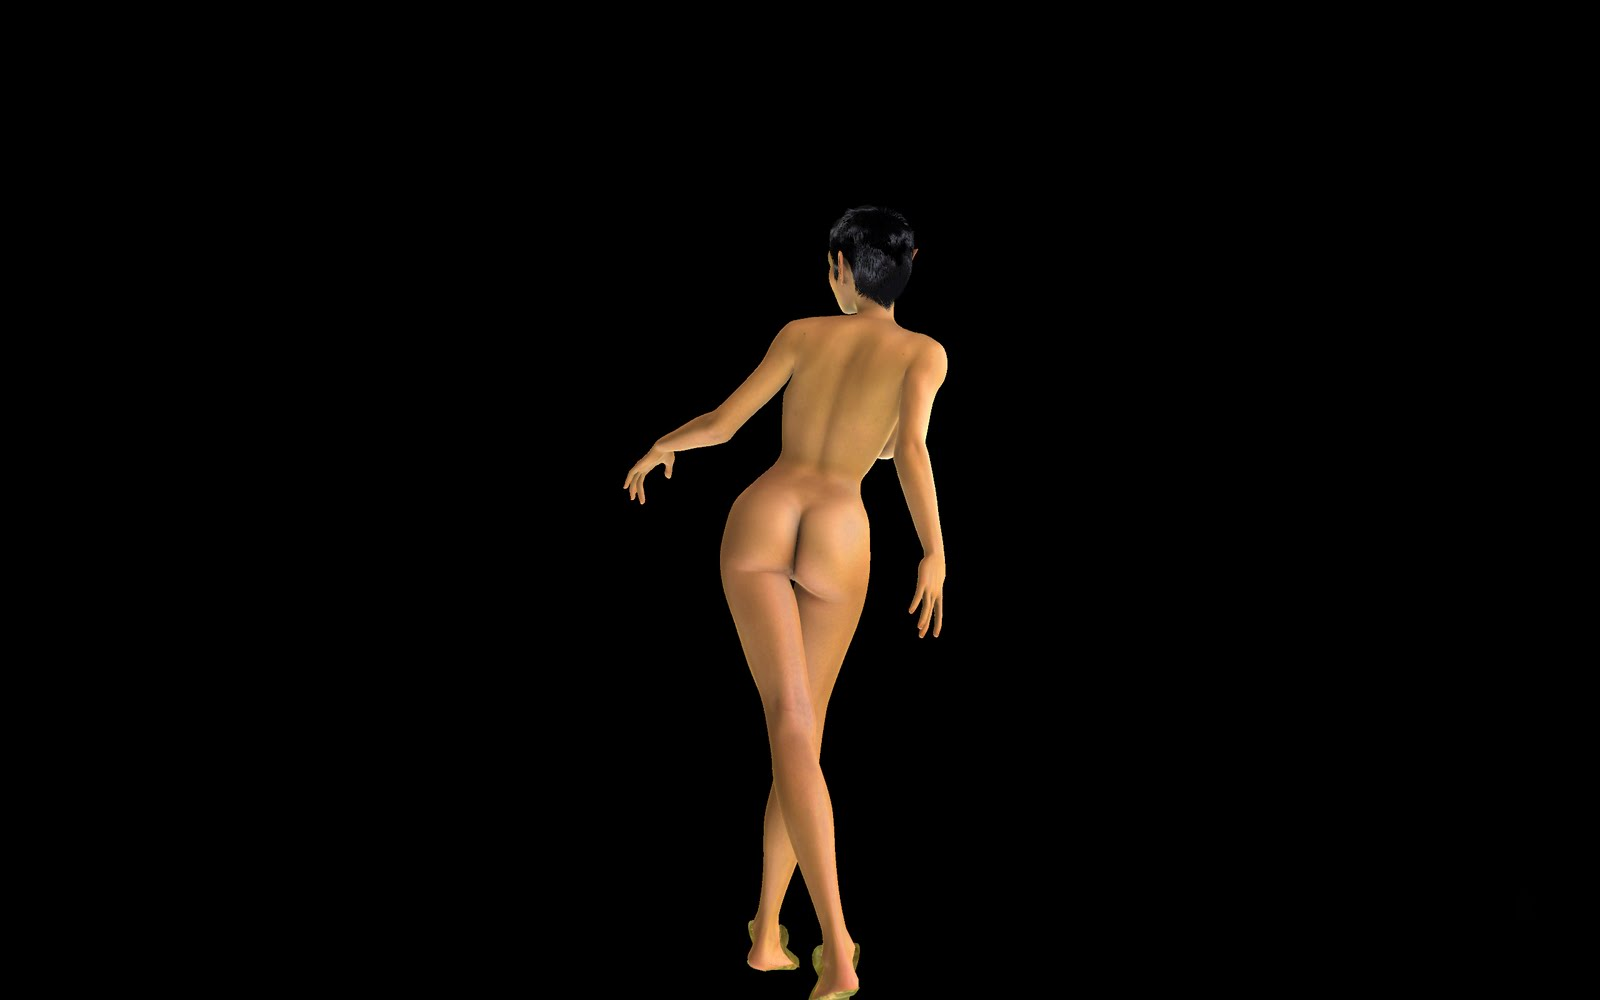 Zelda nude patch erotica videos